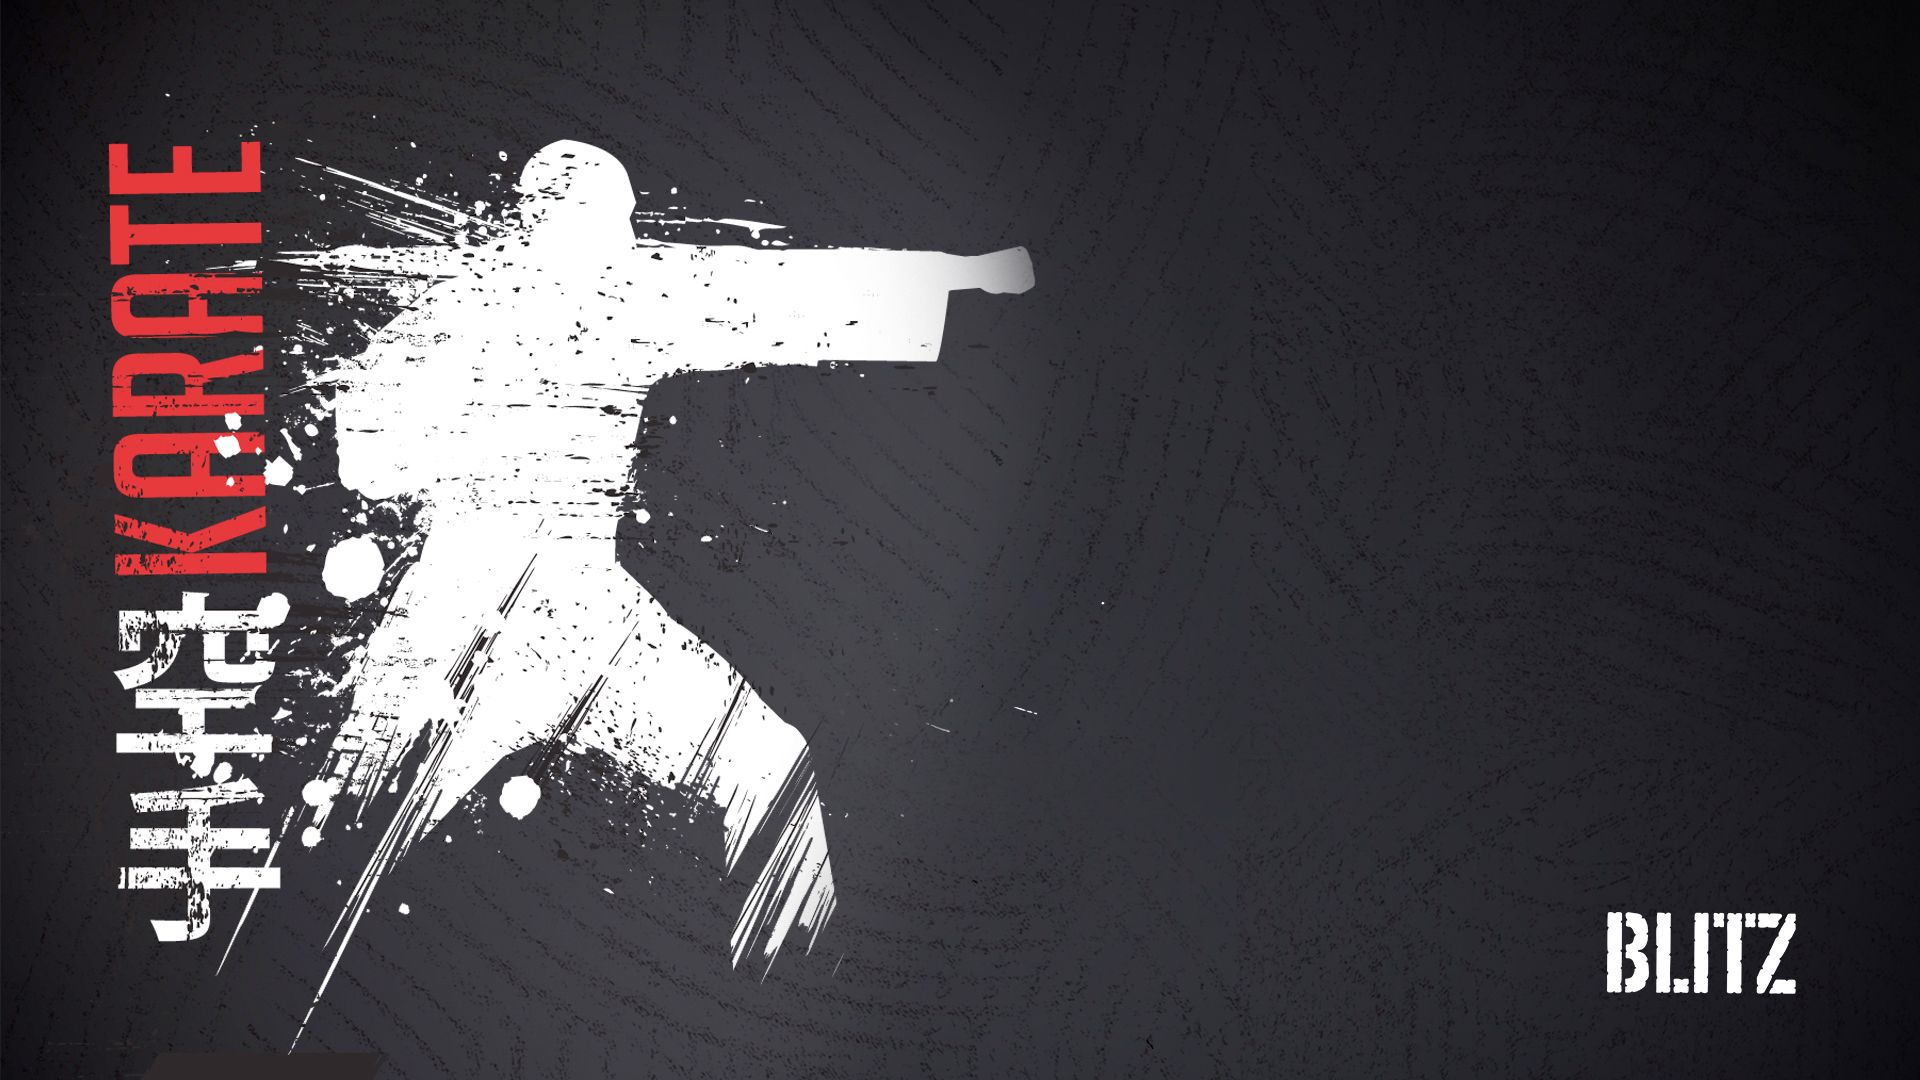 blitz karate wallpaper 1920 x 1080 martial arts